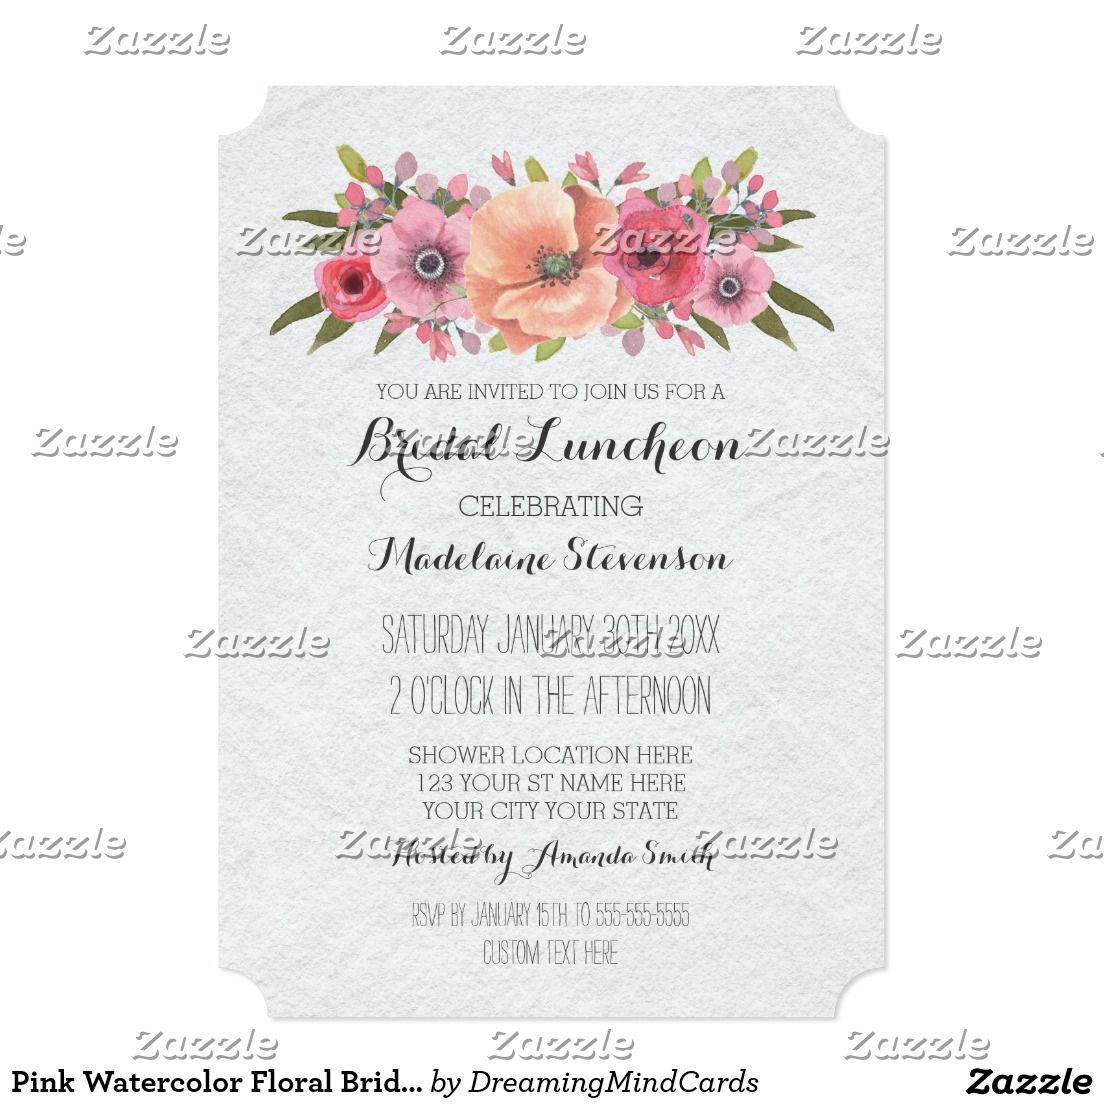 Pink Watercolor Floral Bridal Lunch Invitations